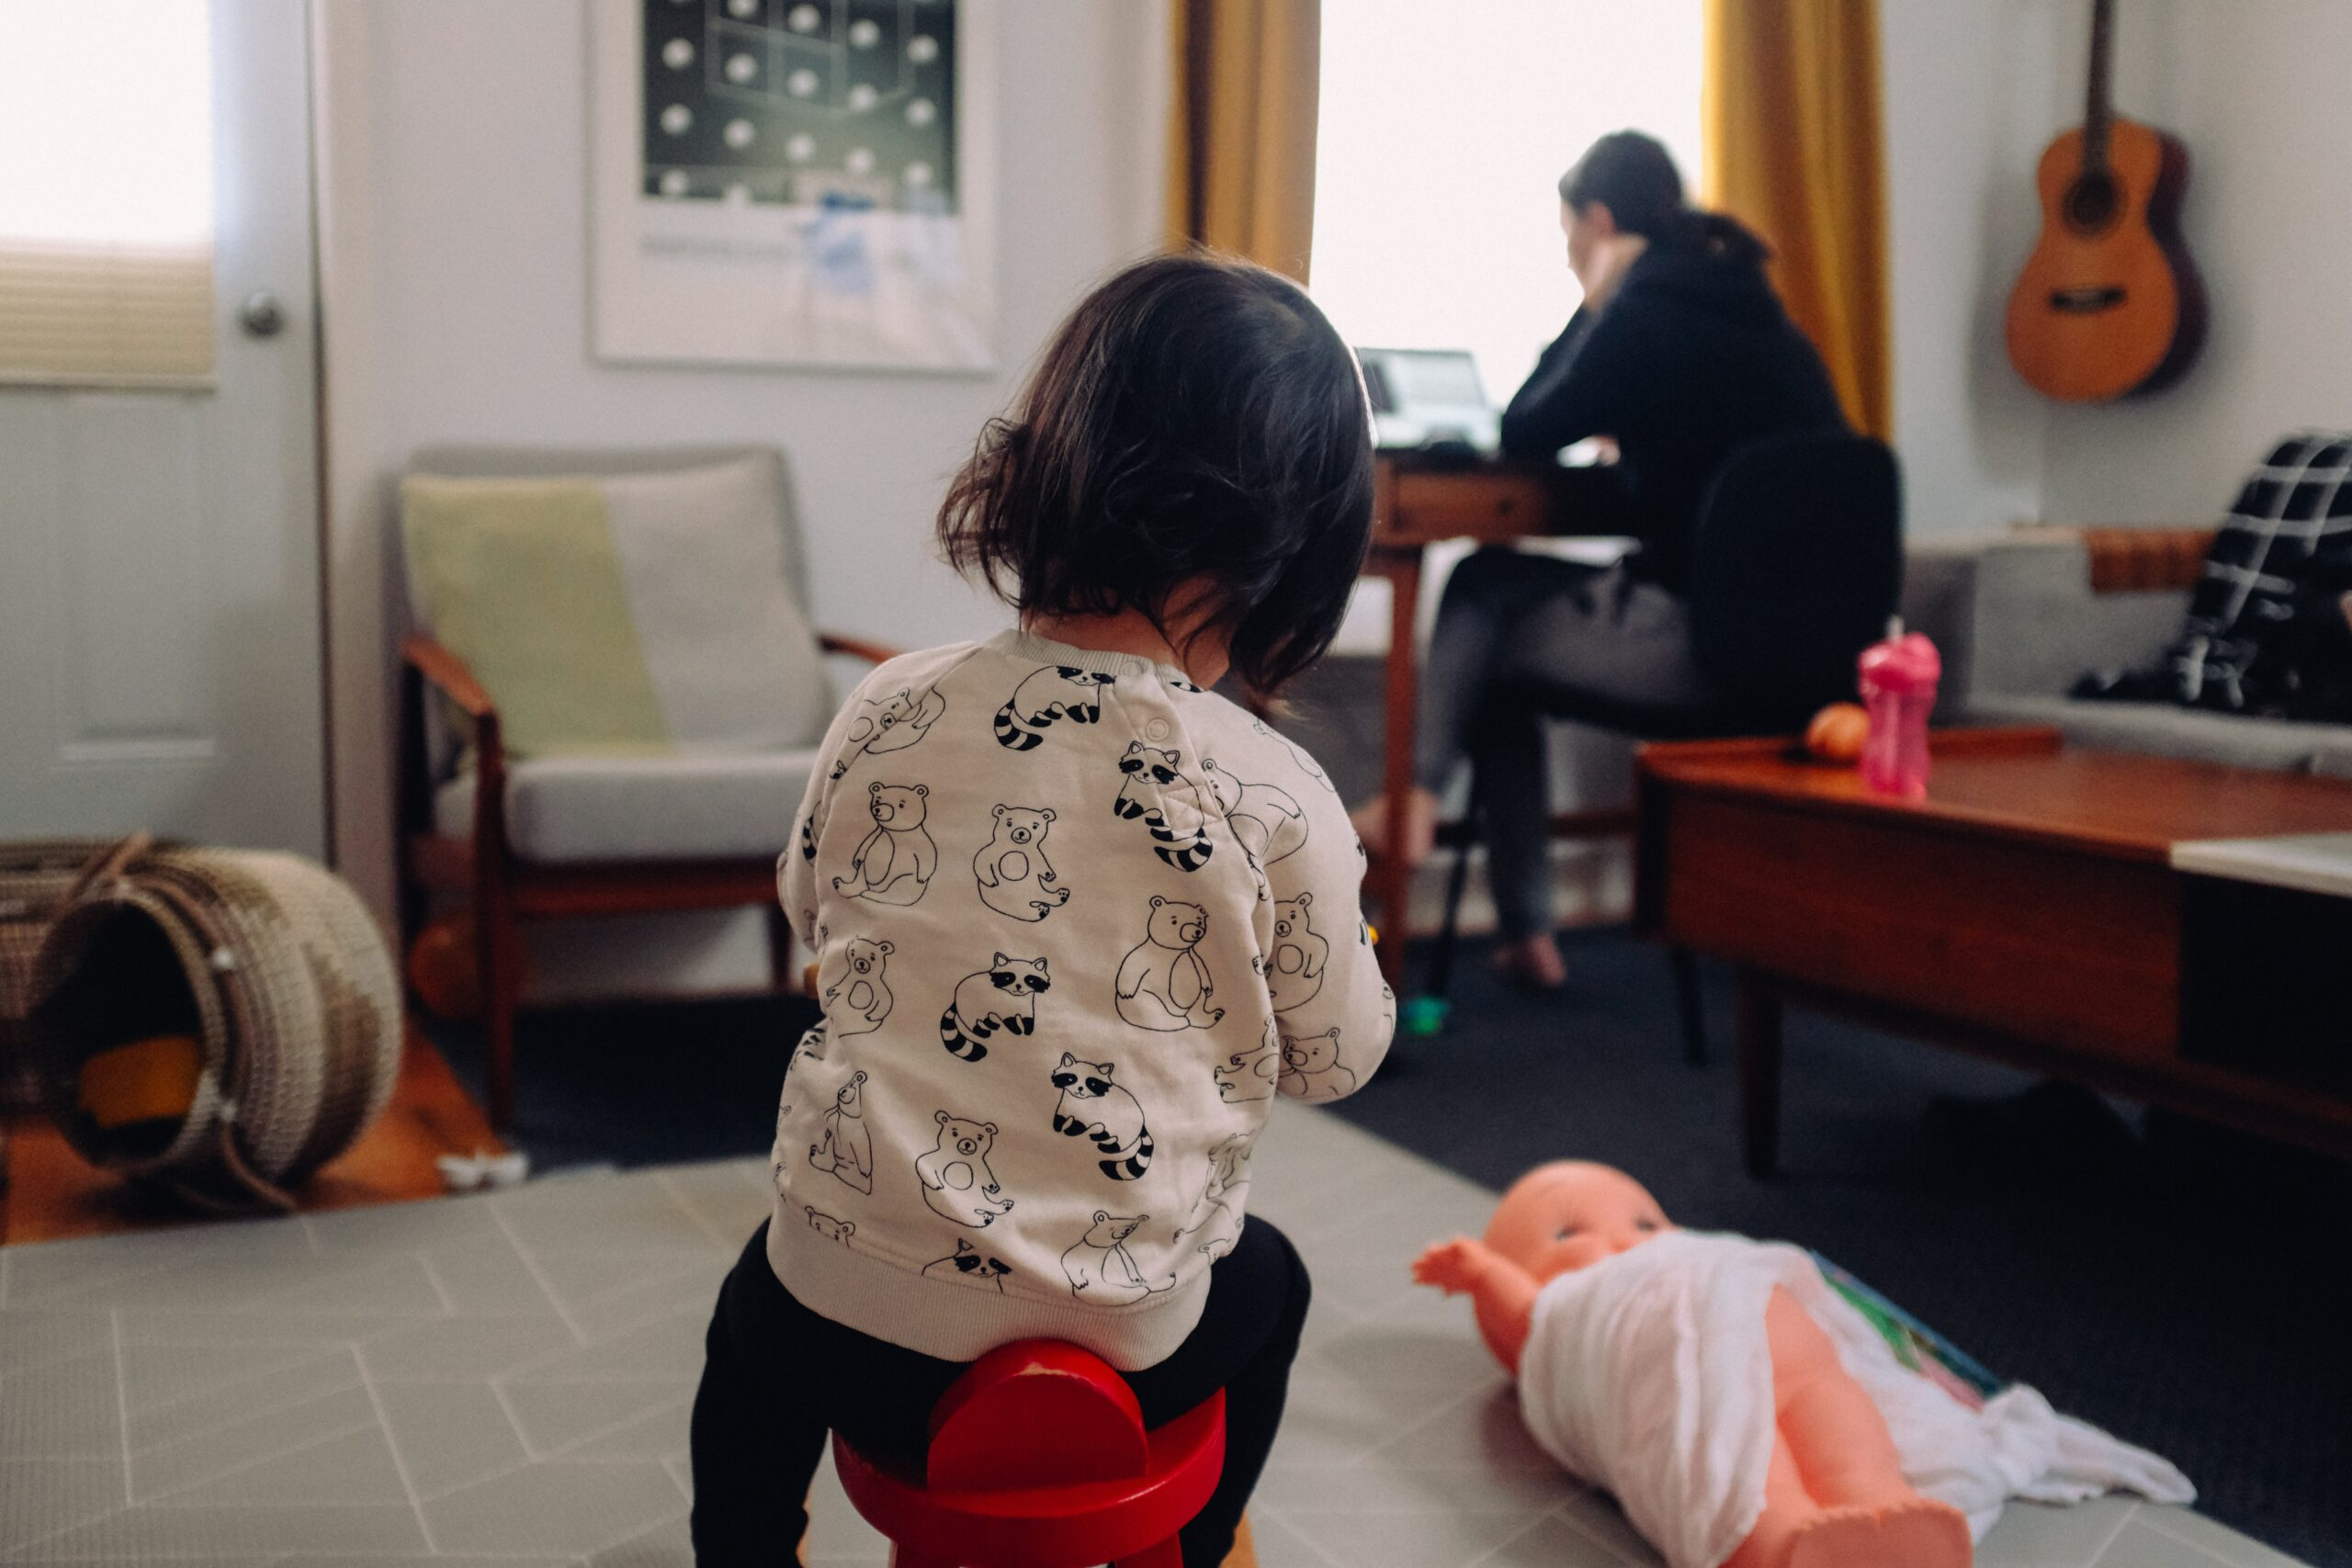 Mexico's Single Mothers Work Single-Handedly For Their Kids' Futures